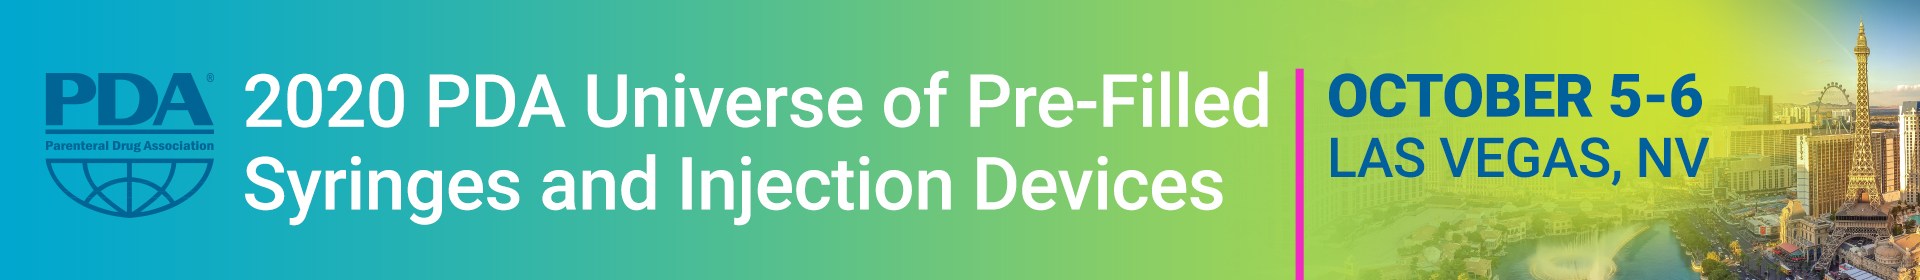 2020 PDA Universe of Pre-Filled Syringes and Injection Devices Event Banner